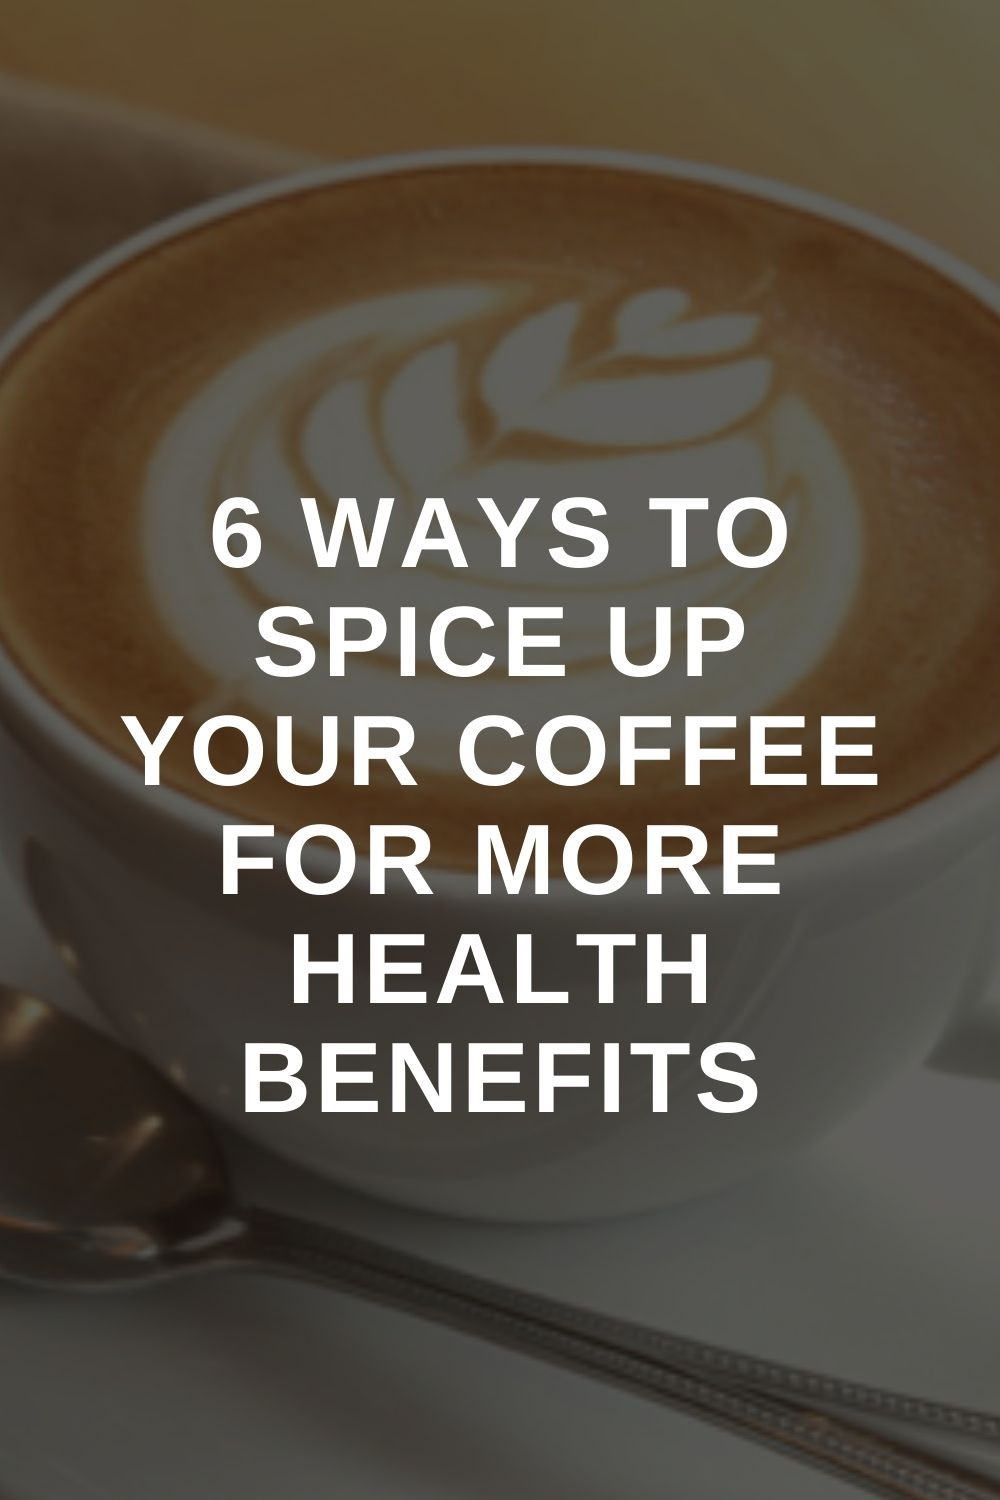 6 Ways to Spice Up Your Coffee for More Health Benefits